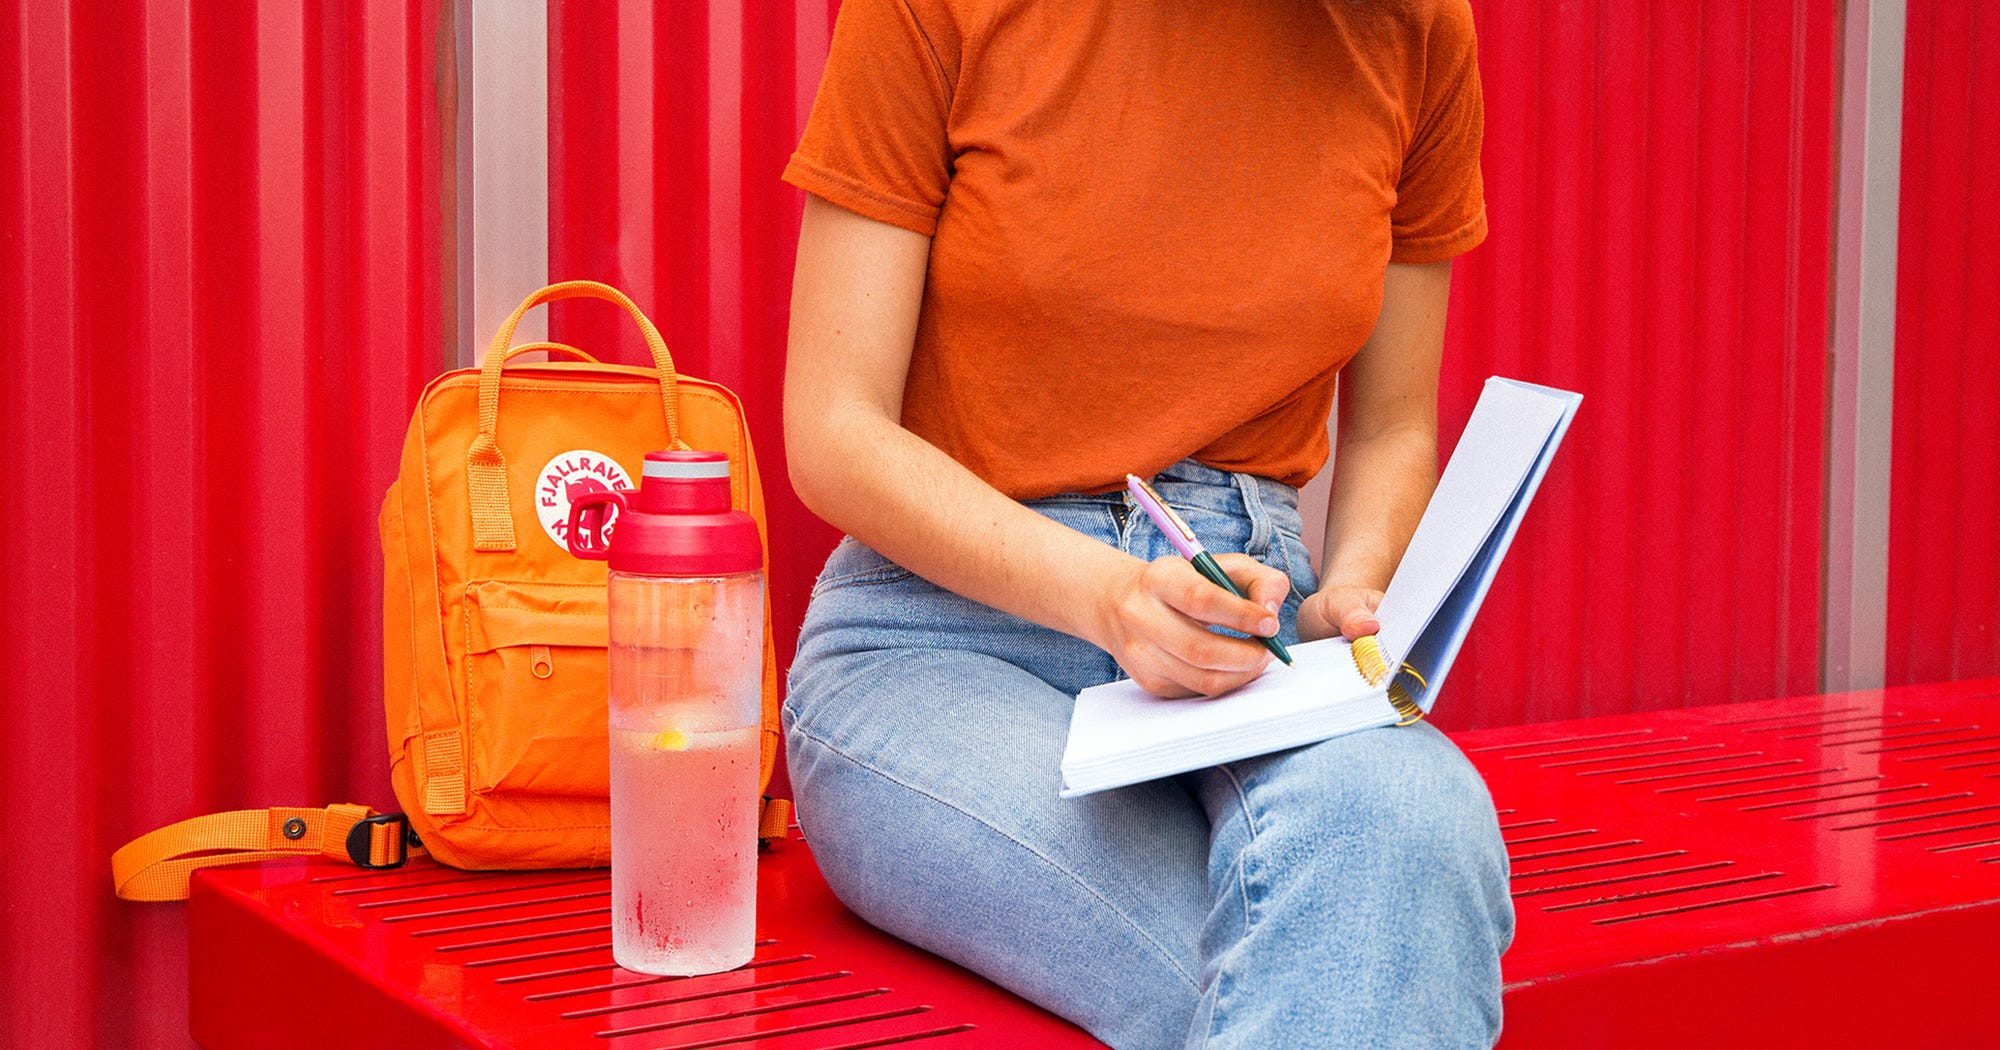 These Fitness Journals Can Help You Reach Your Goals